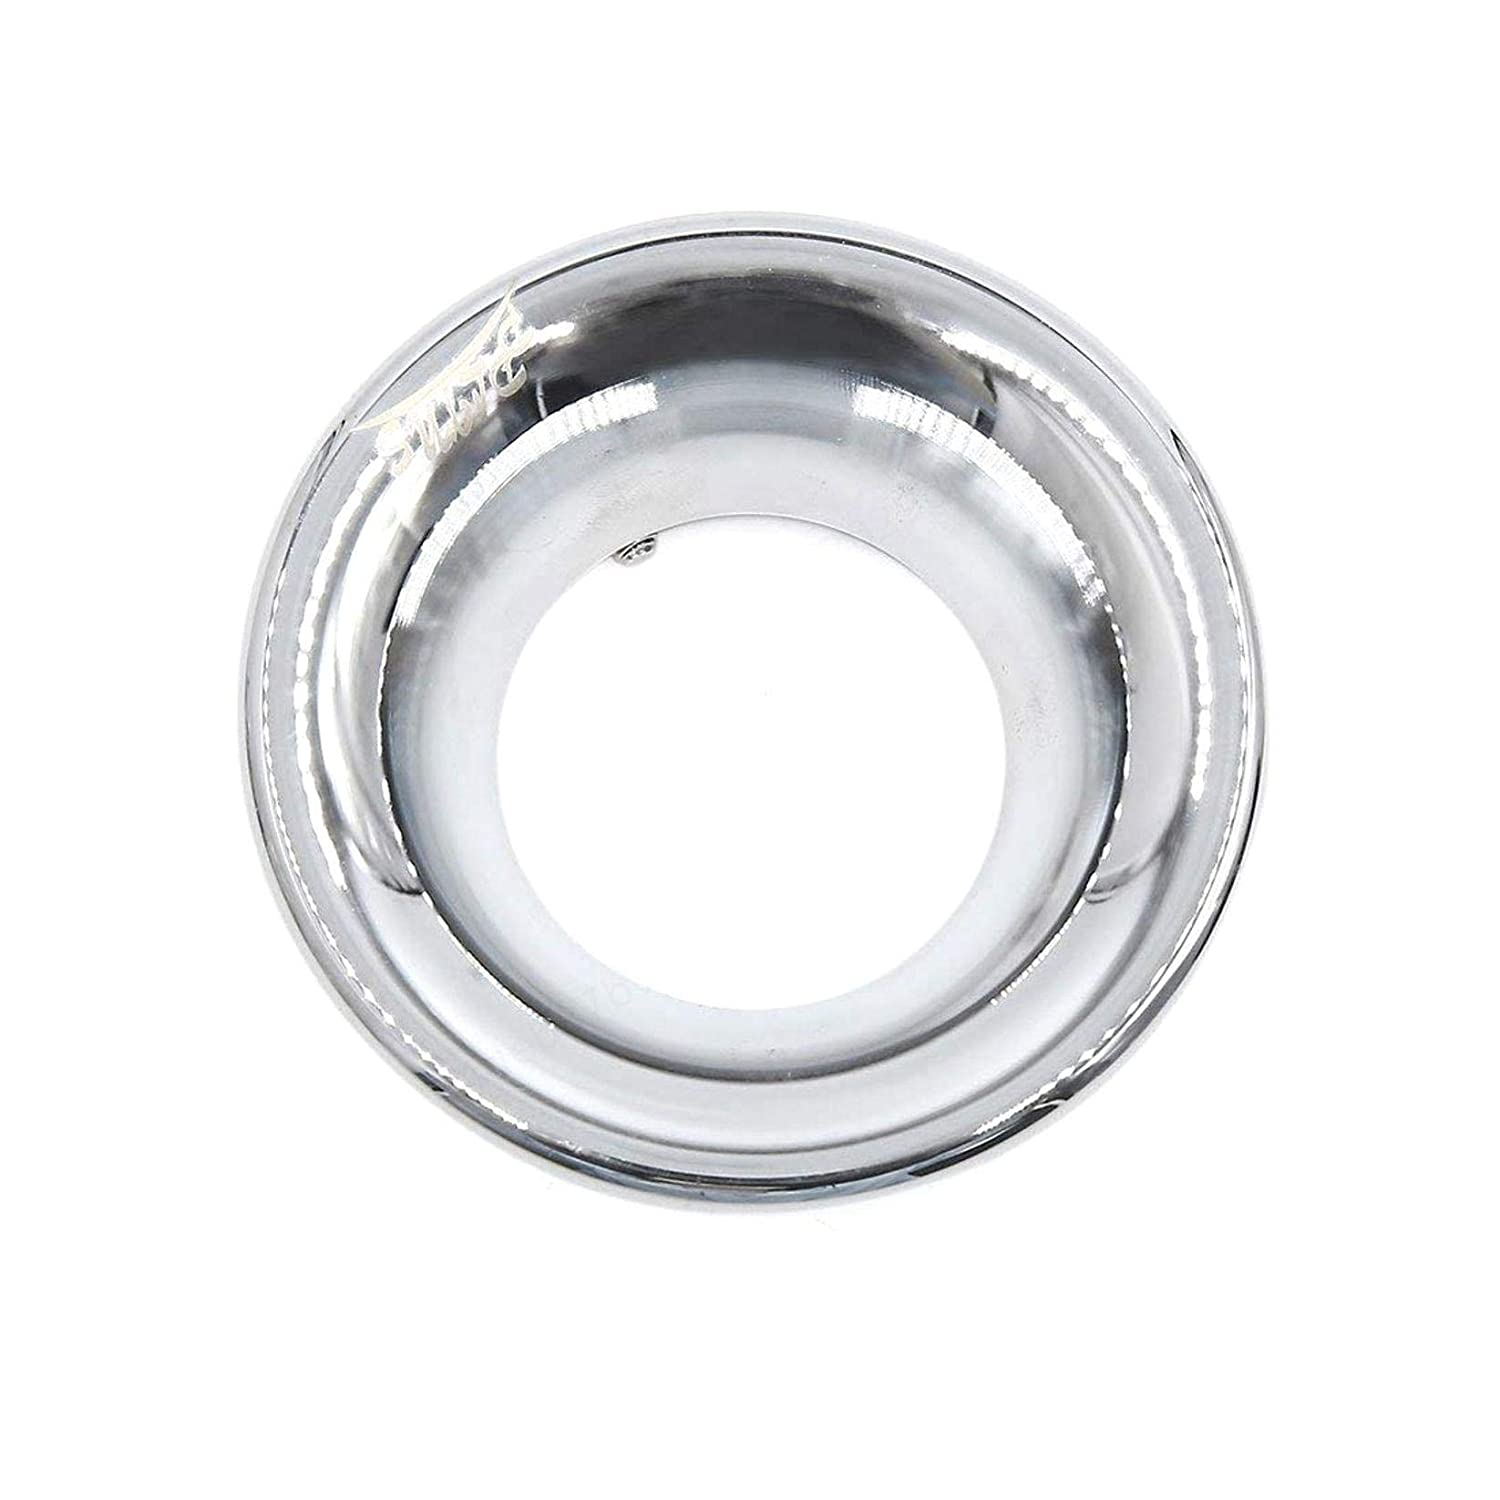 COMEYOU Velocity Stack 50mm Inlet Dia Moto Compresseur dair Turbo Admission Velocity Stack Silver Tone